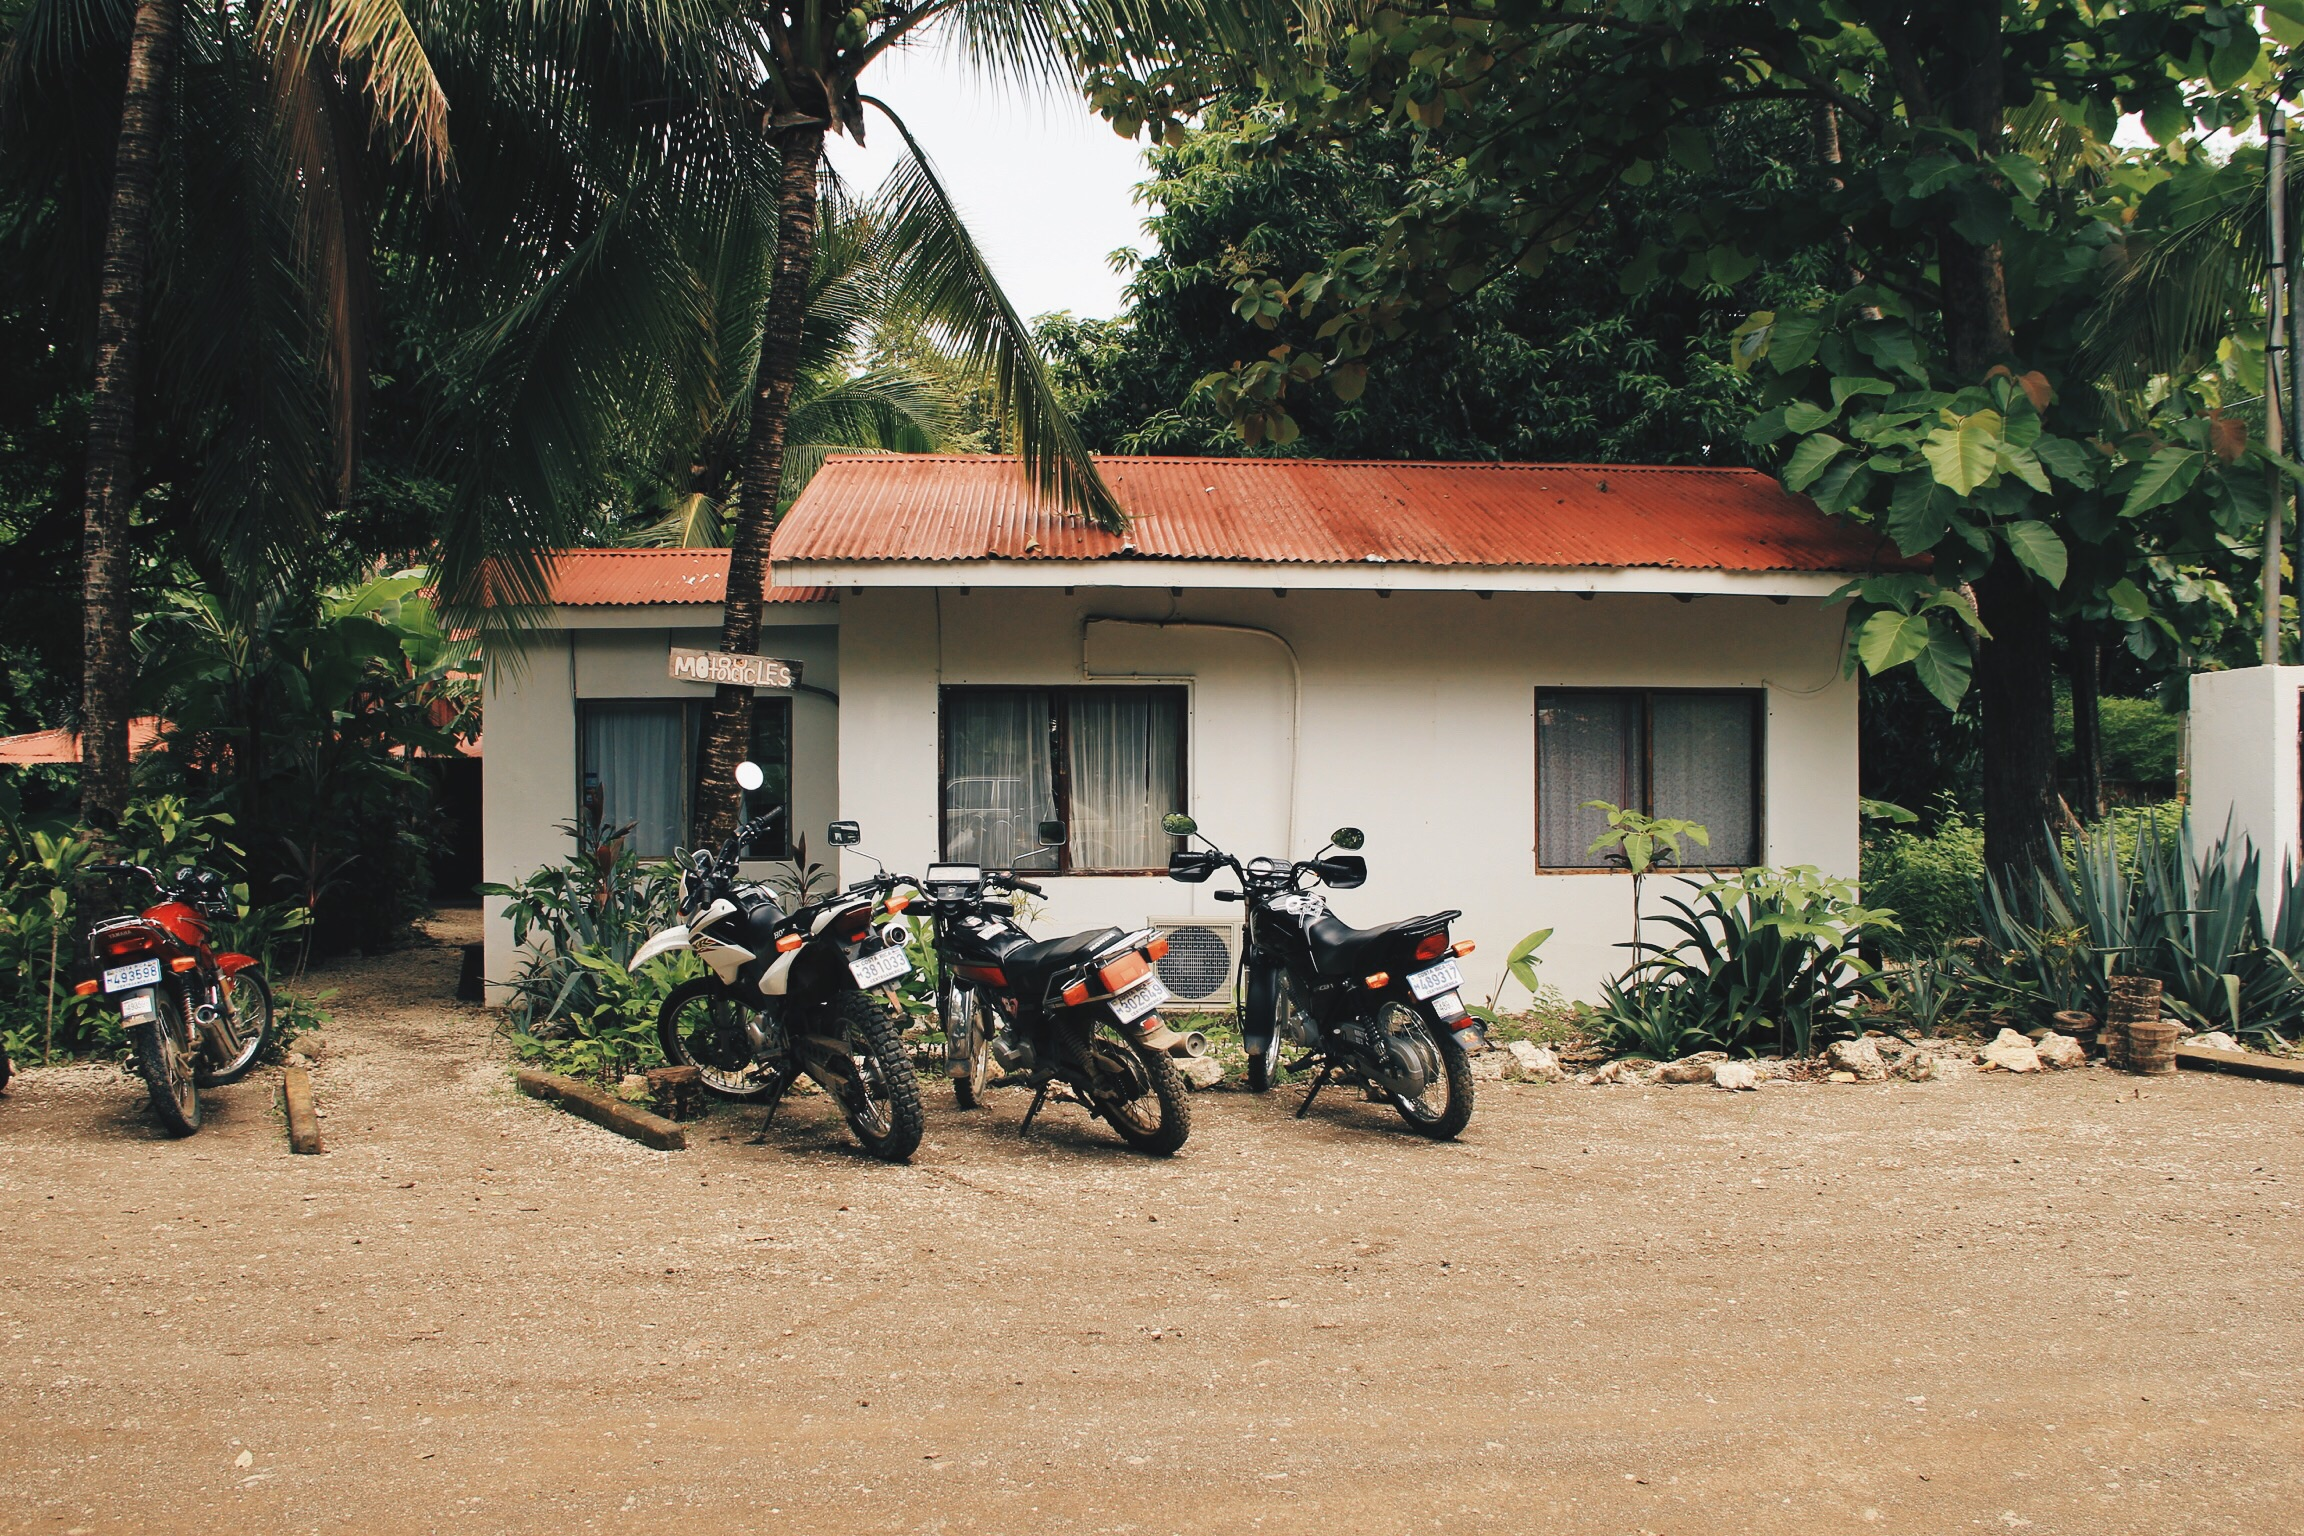 motorcycle parking (and the backside of Bazzar)